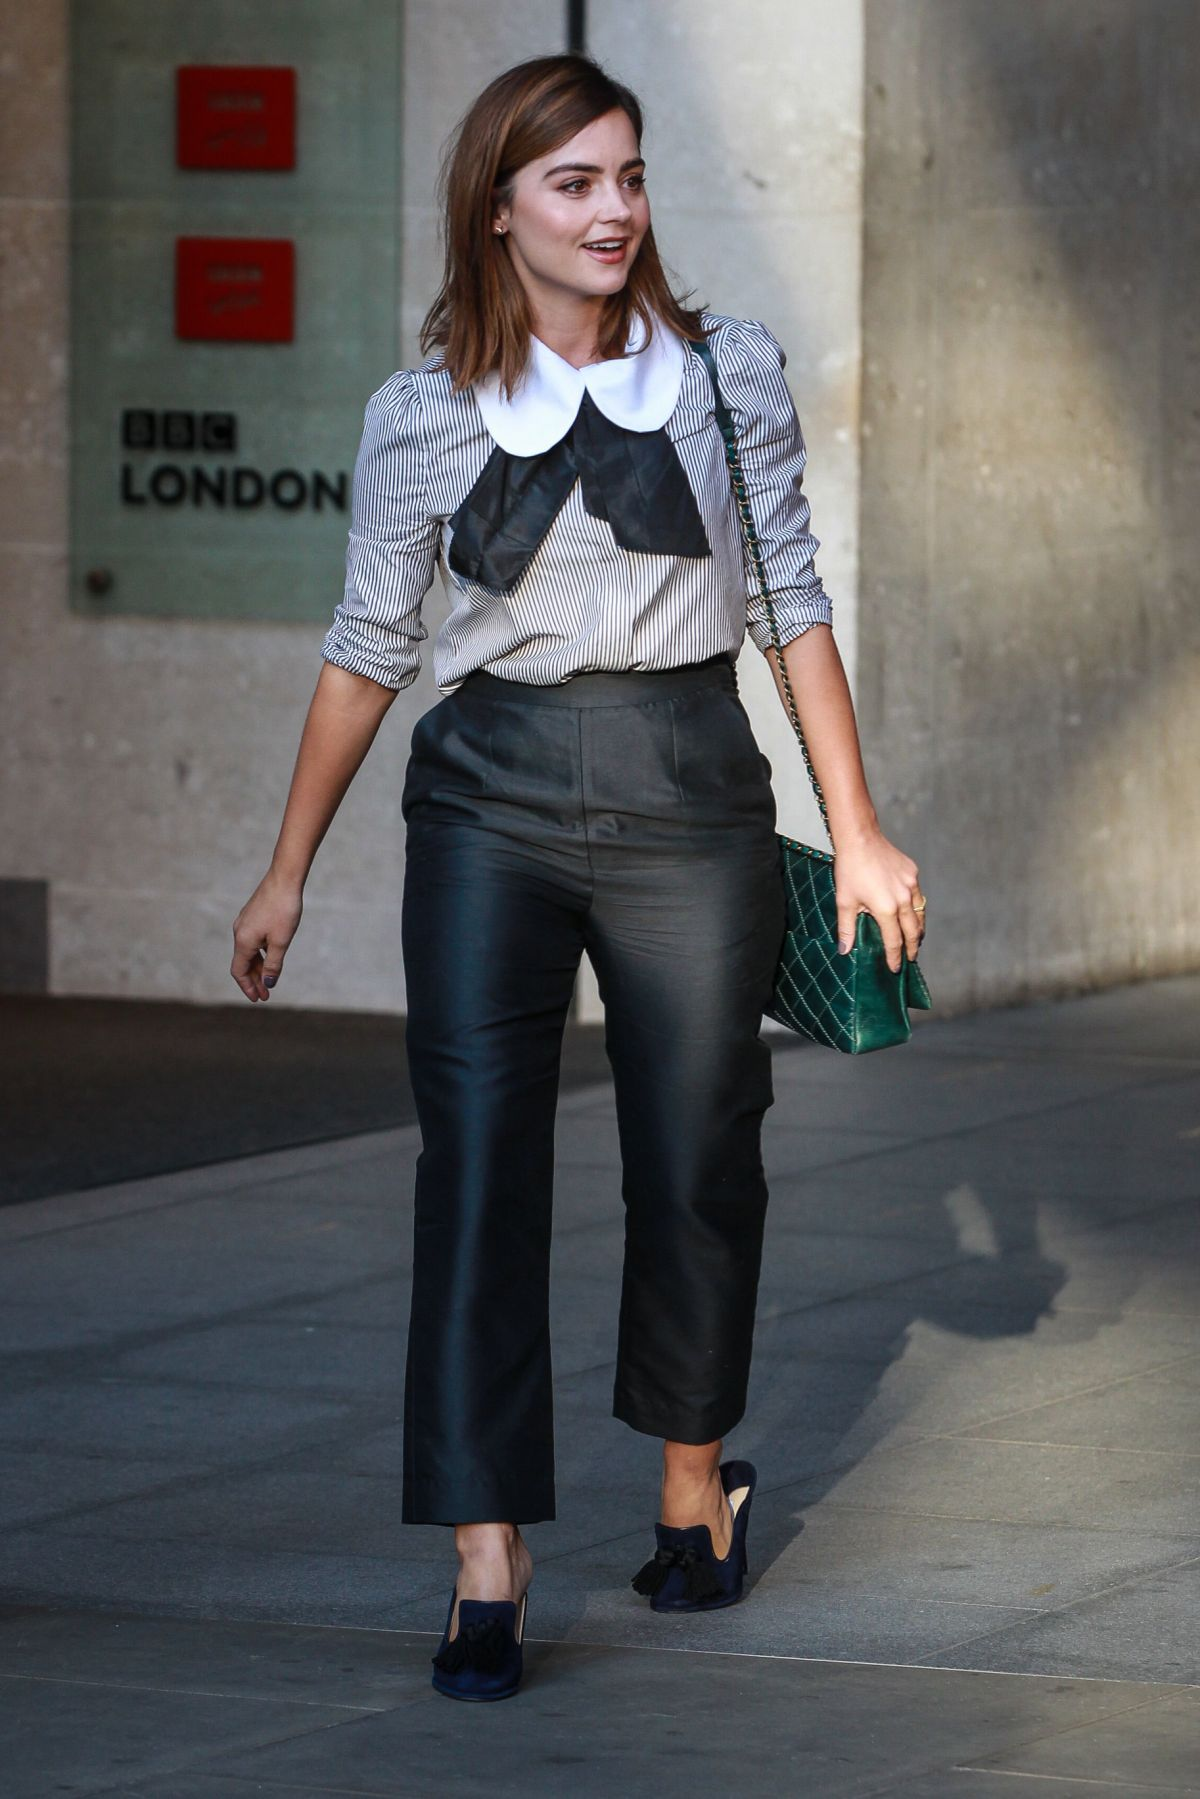 jenna coleman awesome look